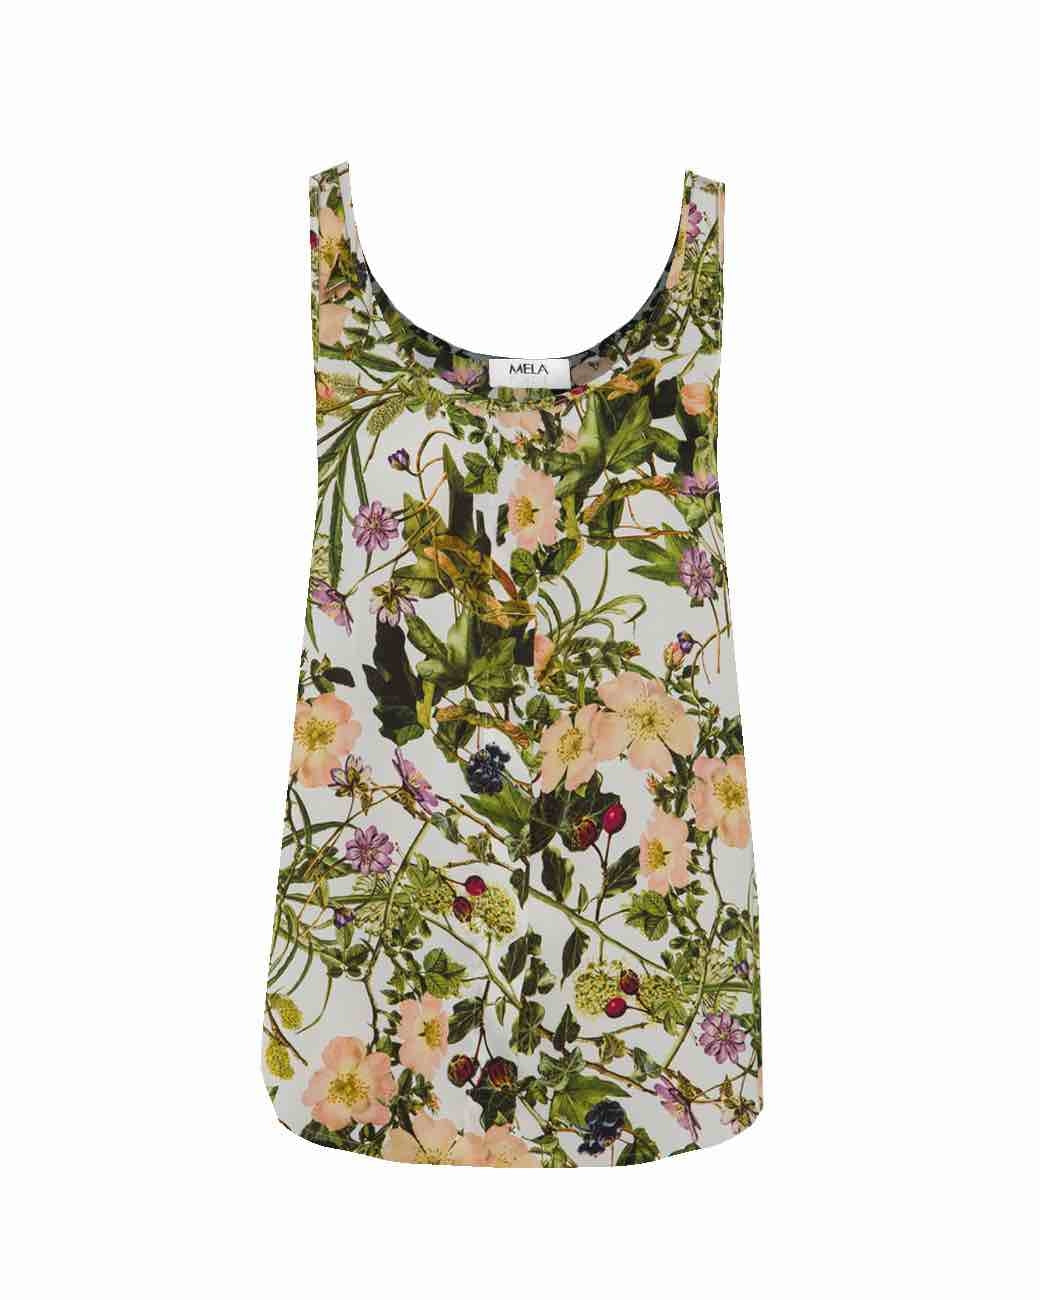 Mela Purdie - Halo Tank in Passion Vine Print Satin